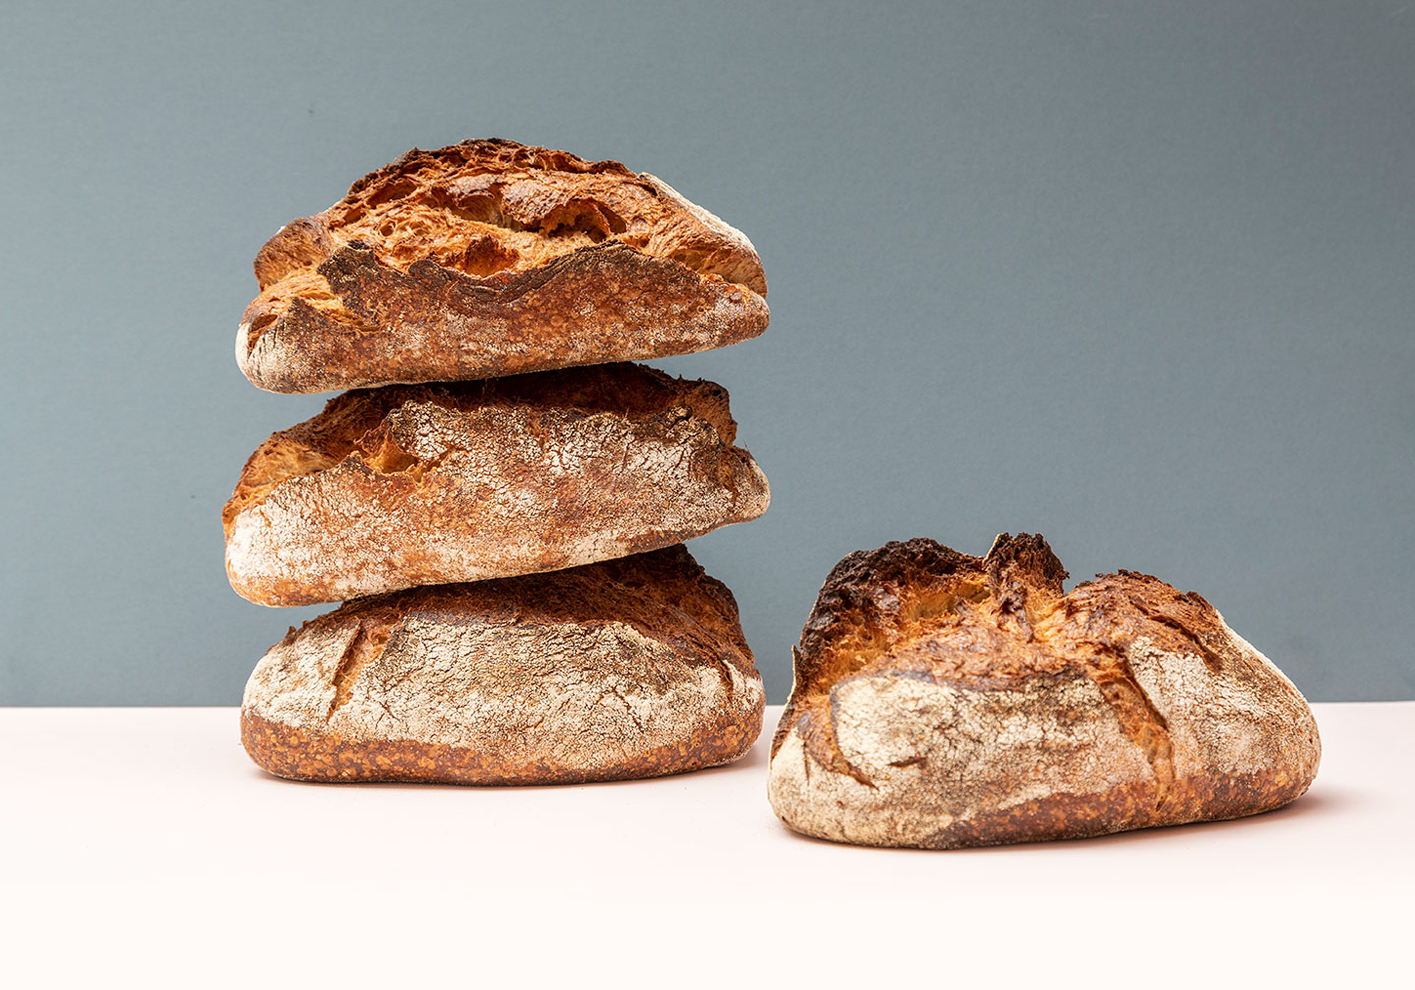 'Home bread makers are our best customers' says Tom Molnar of Gail's, the bakery known for its exceptional sour dough